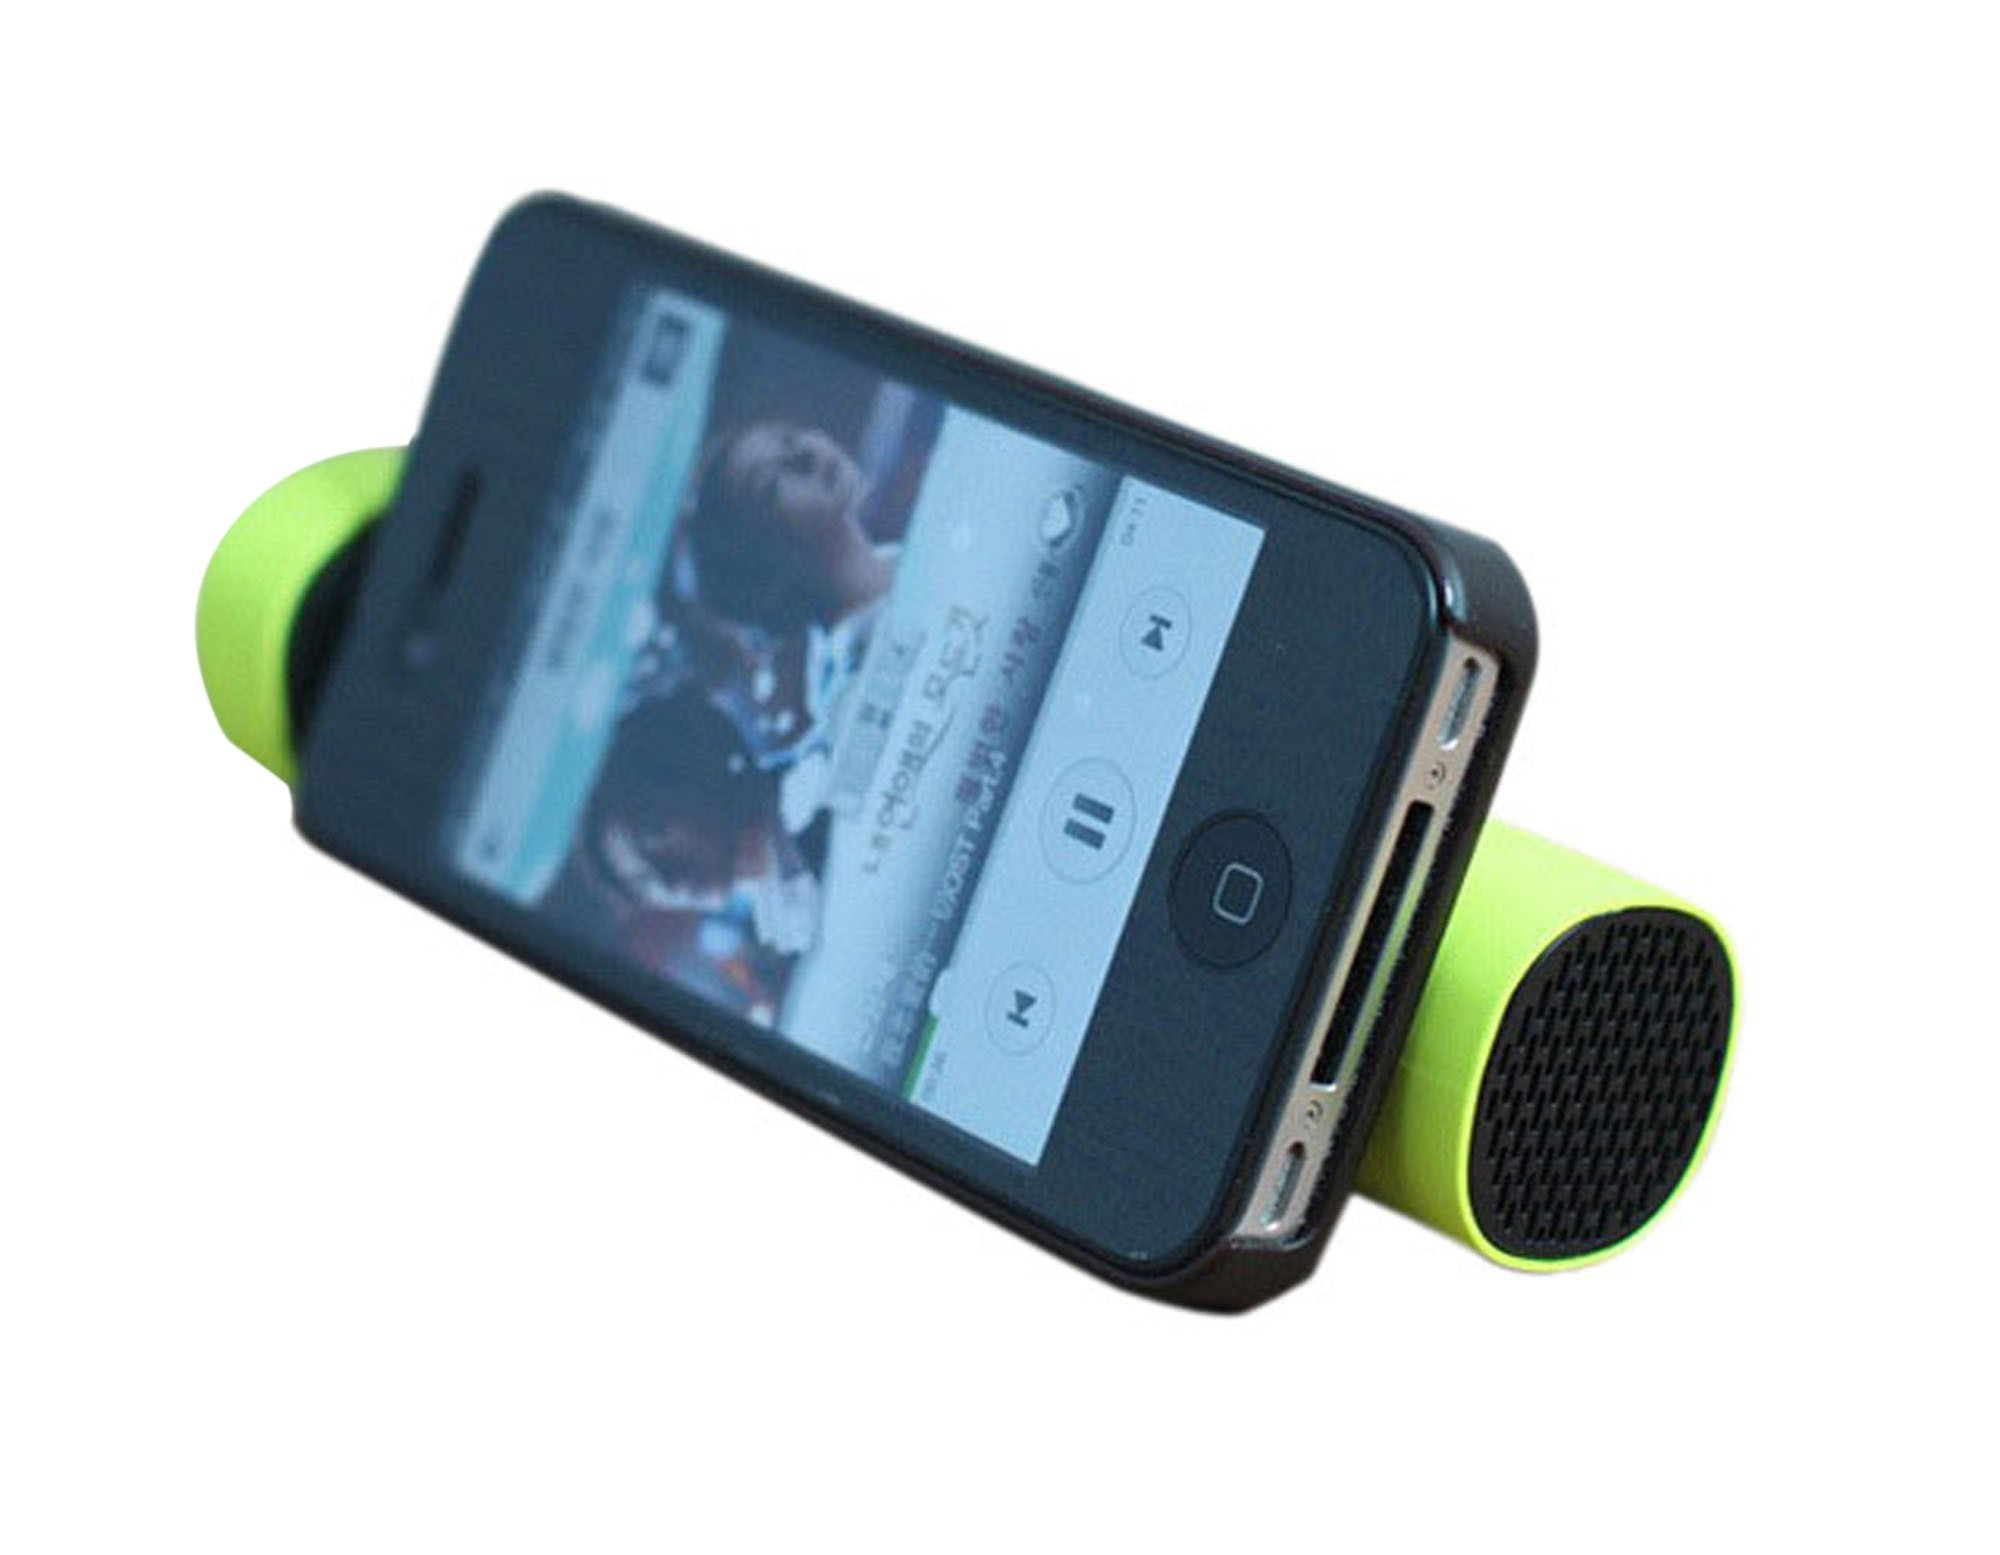 Power bank with speaker